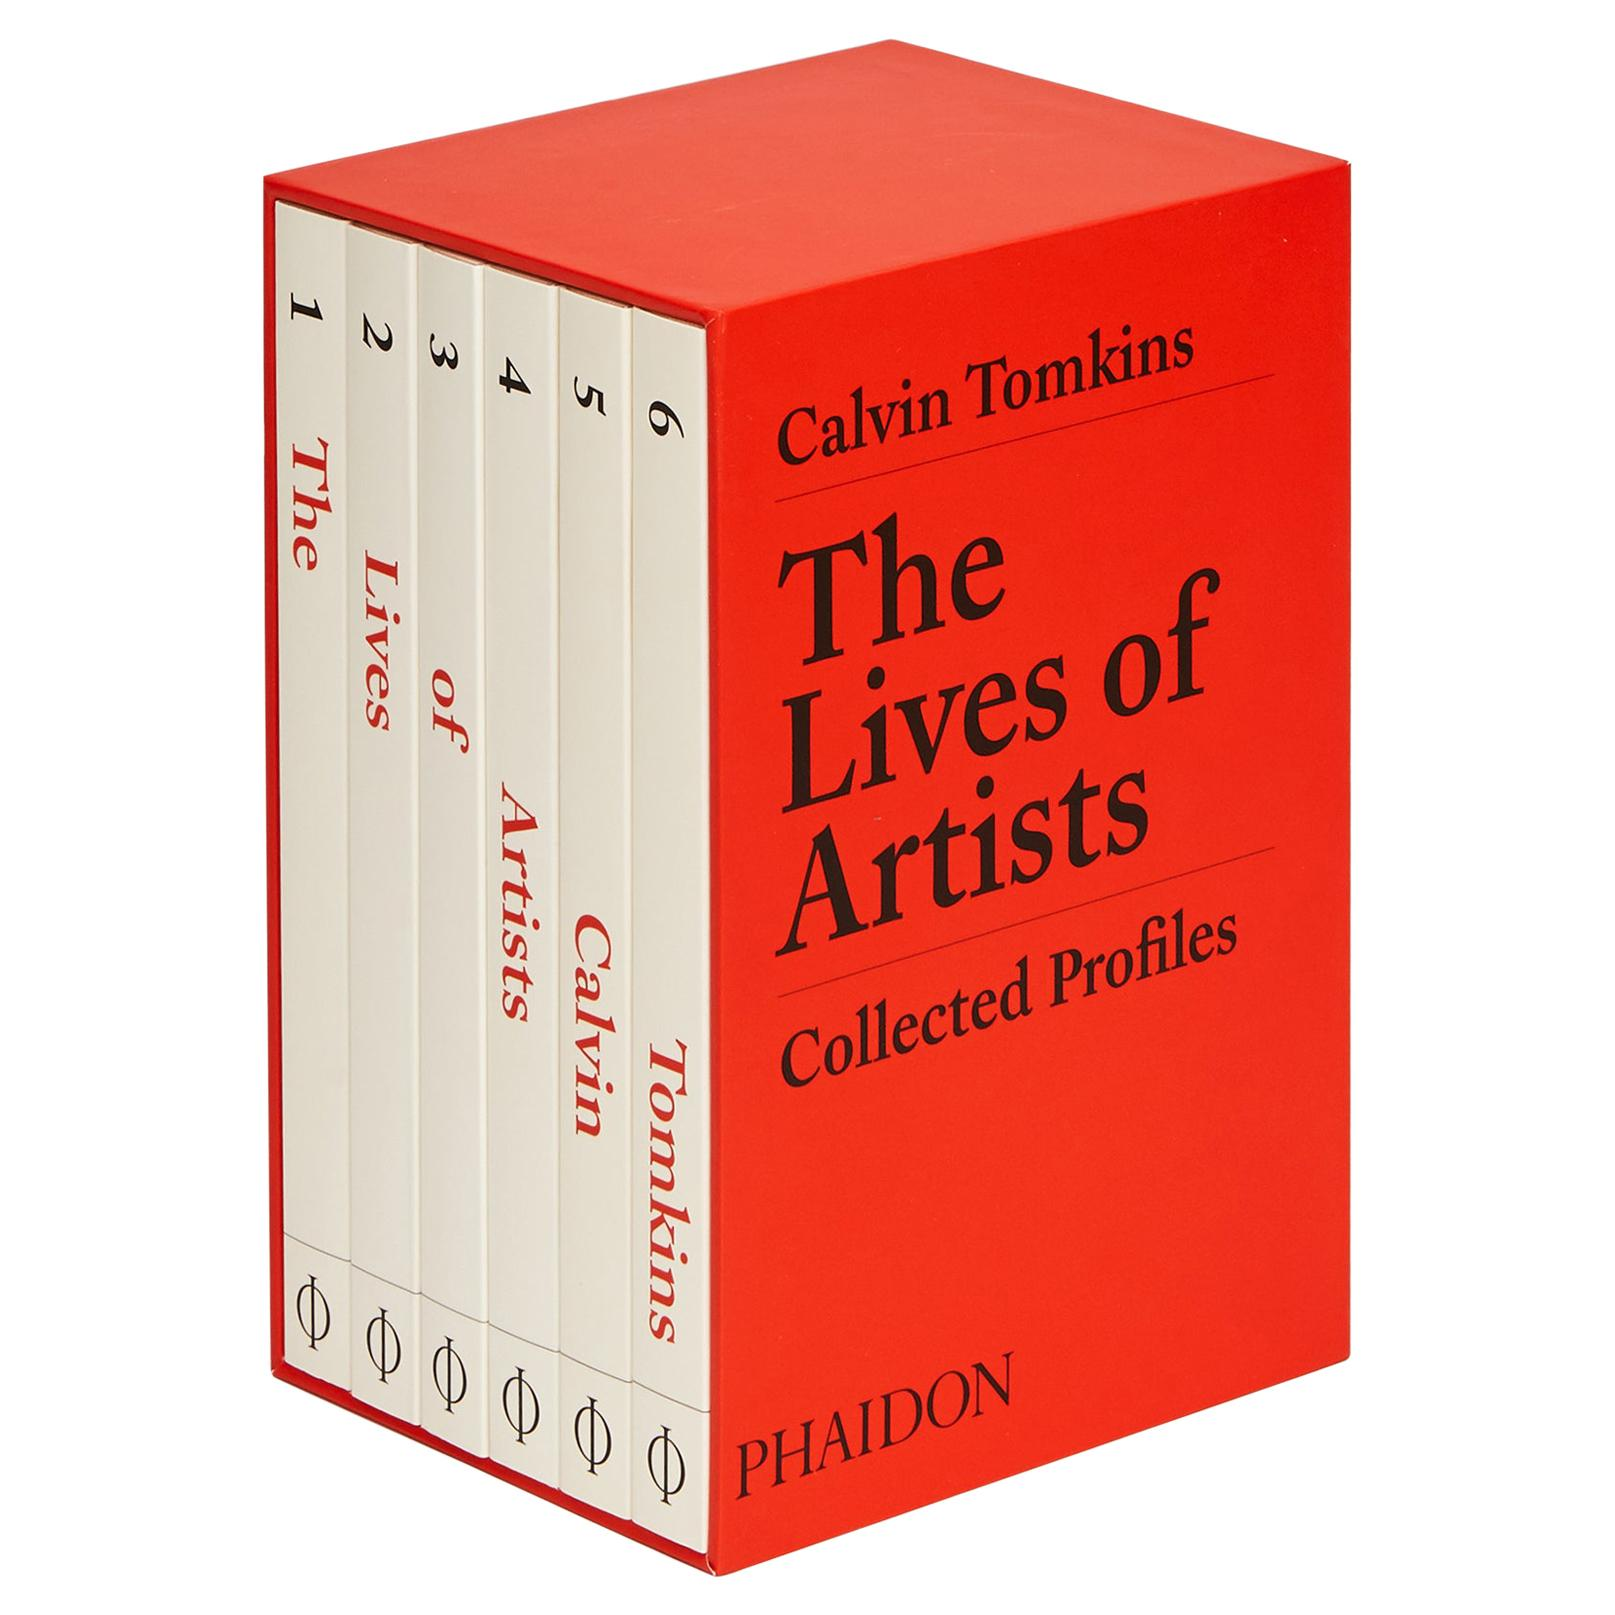 The Lives of Artists Collected Profiles by Calvin Tomkins